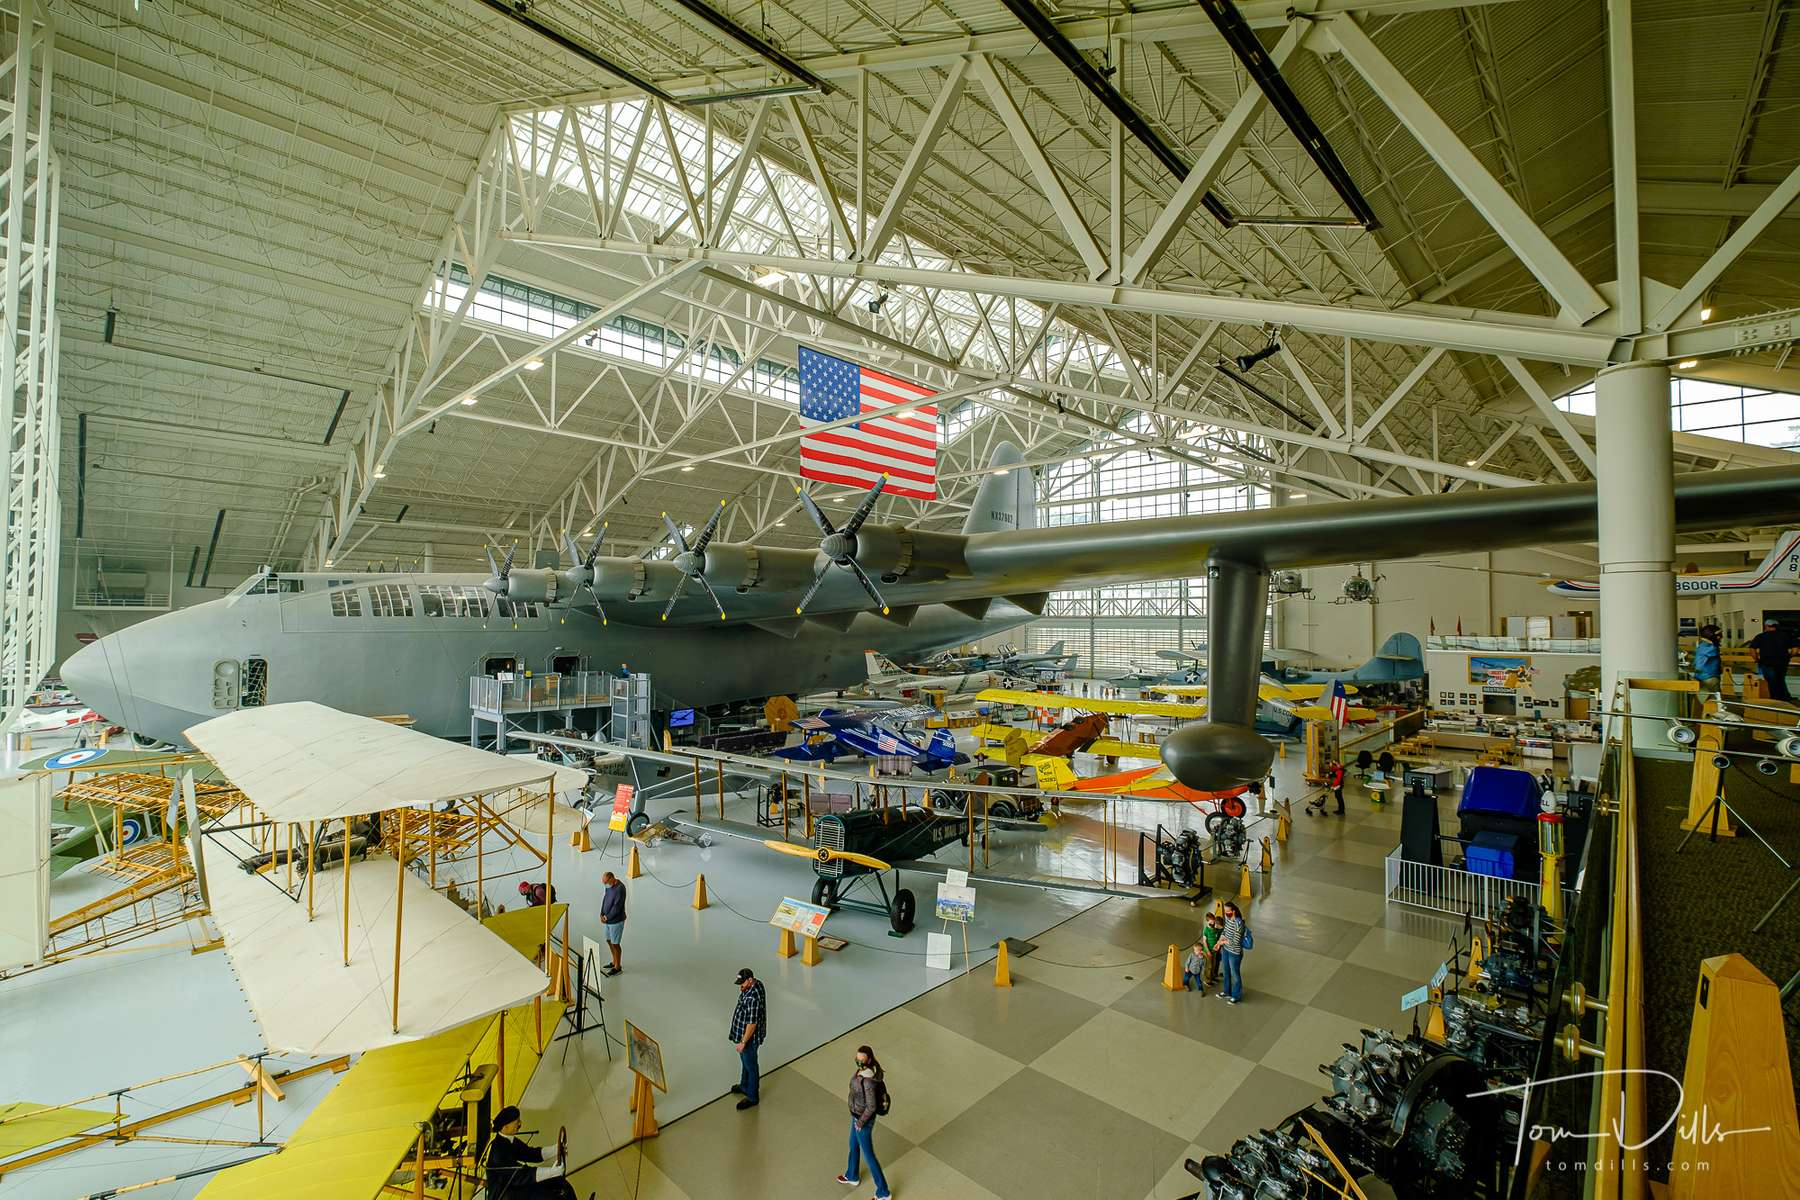 Howard Hughes' {quote}Spruce Goose{quote} at the Evergreen Aviation & Space Museum in McMinnville, Oregon